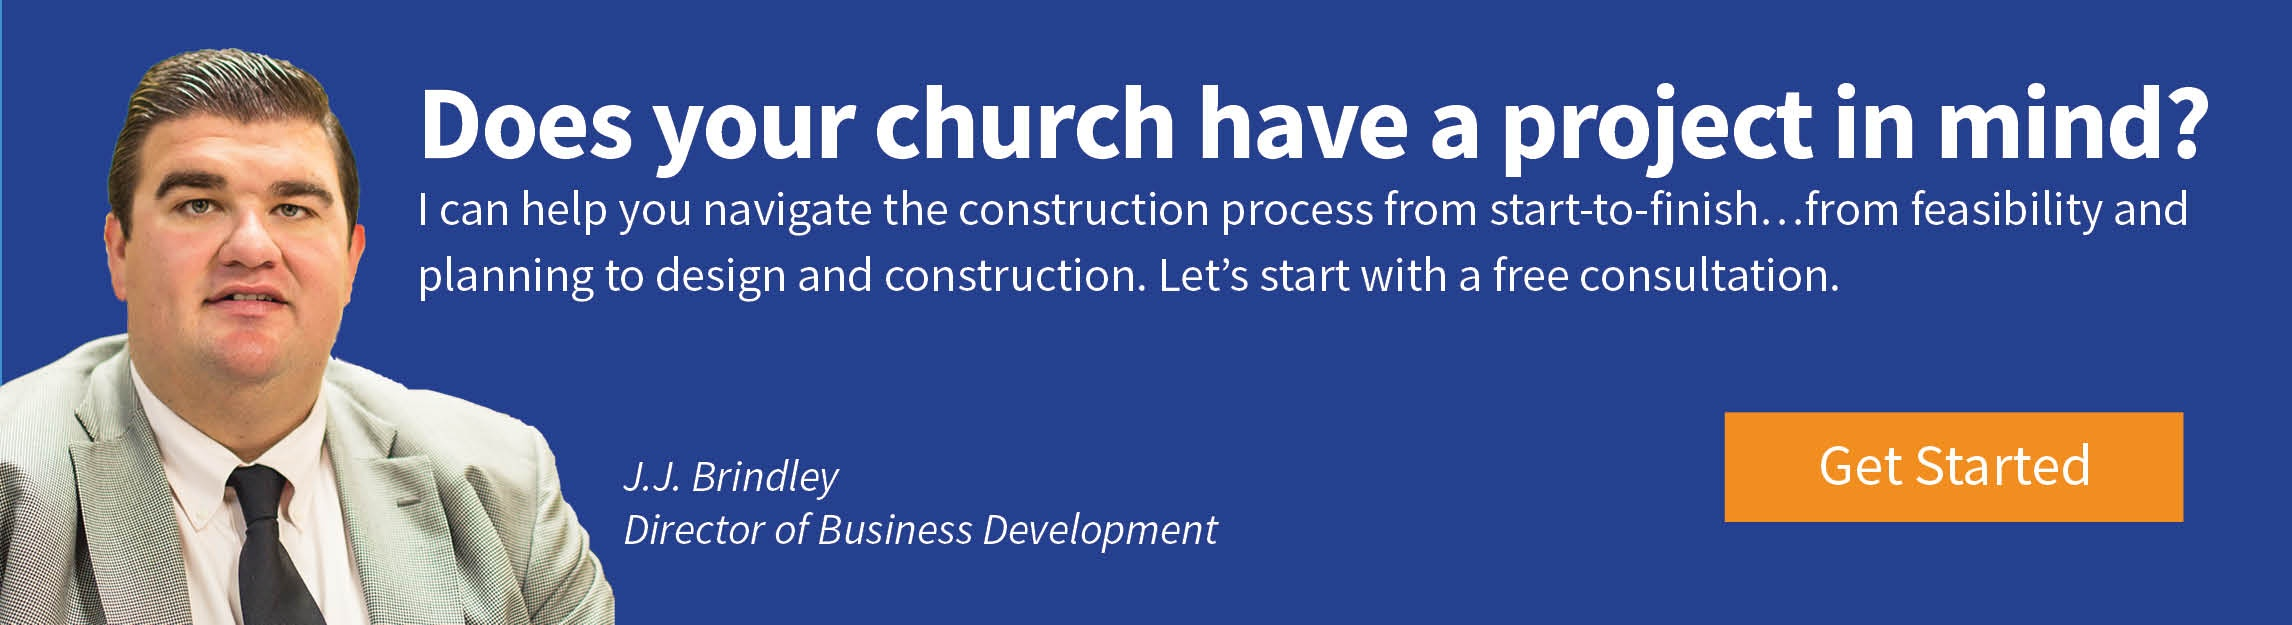 Free Consultation for Churches | Brindley Construction